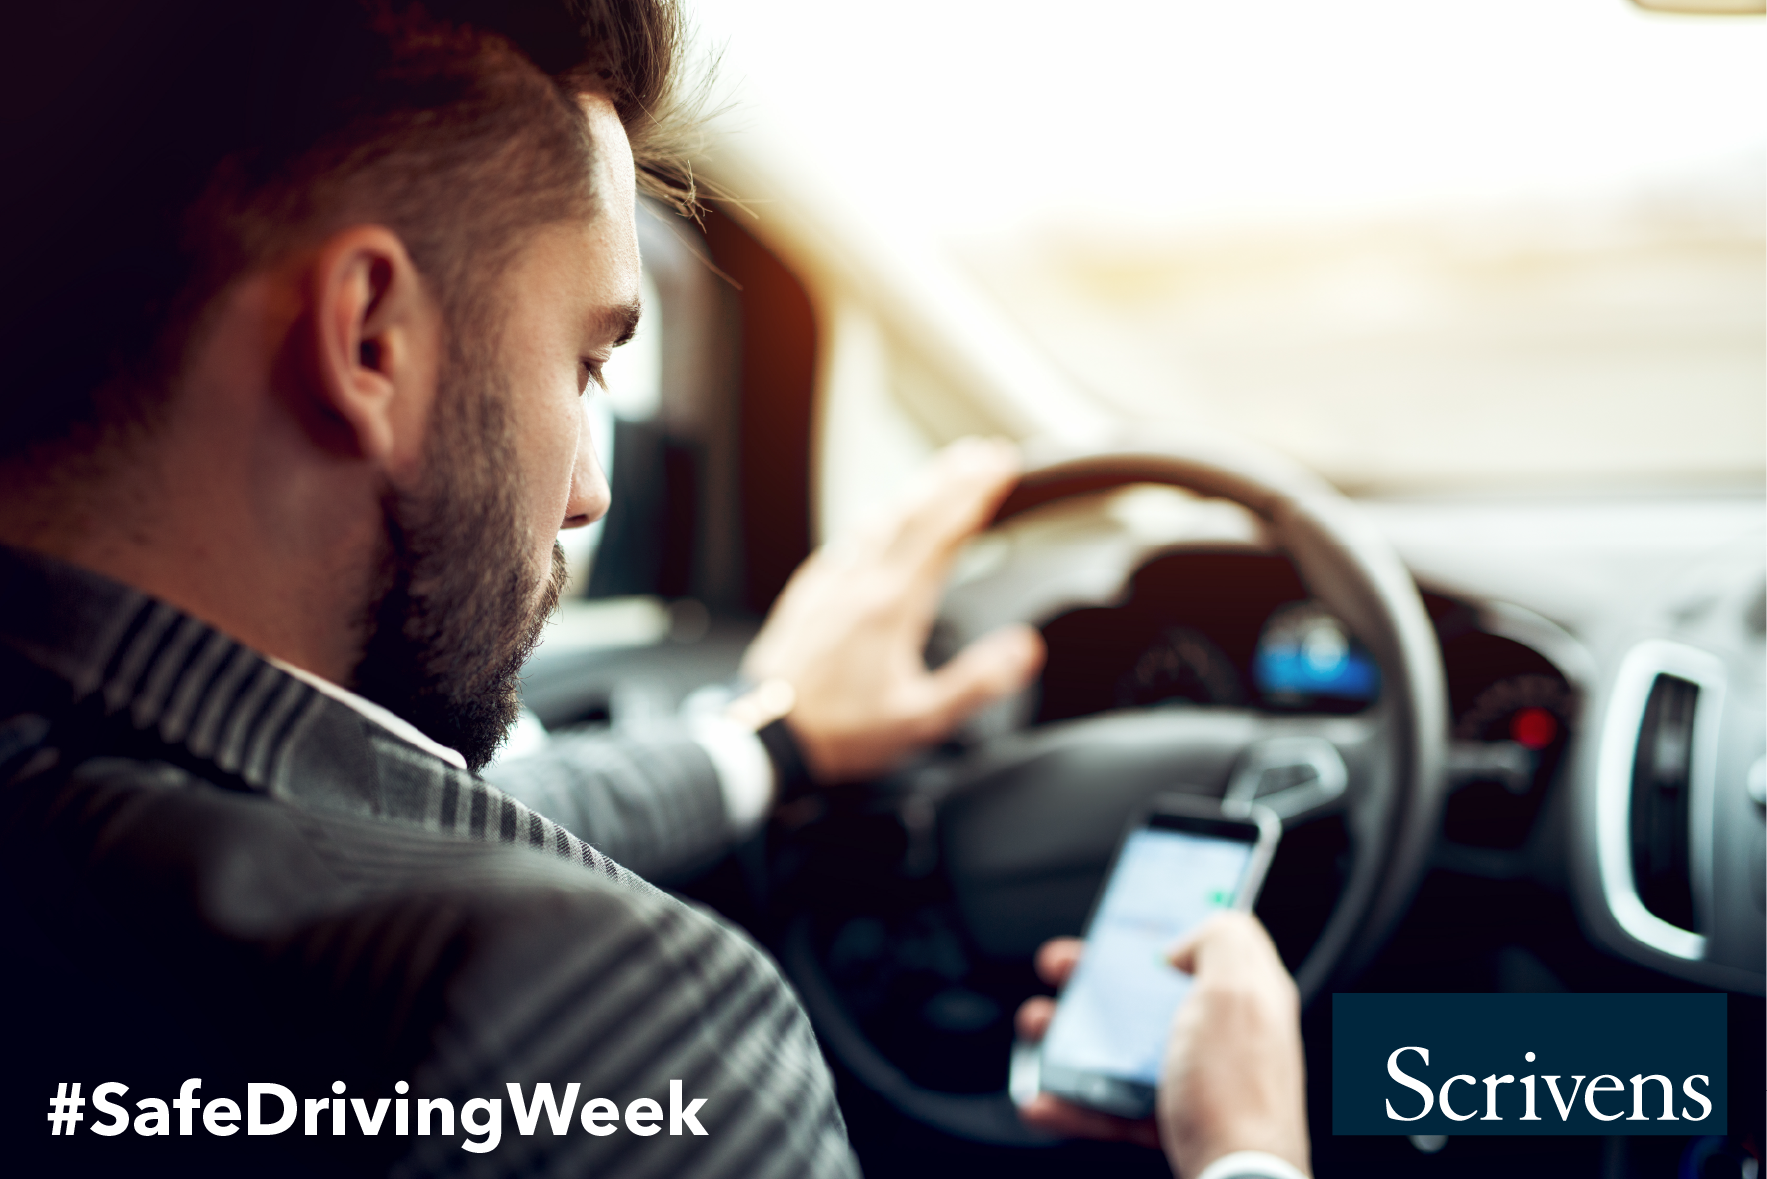 National Safe Driving Week - Preventing Distracted Driving